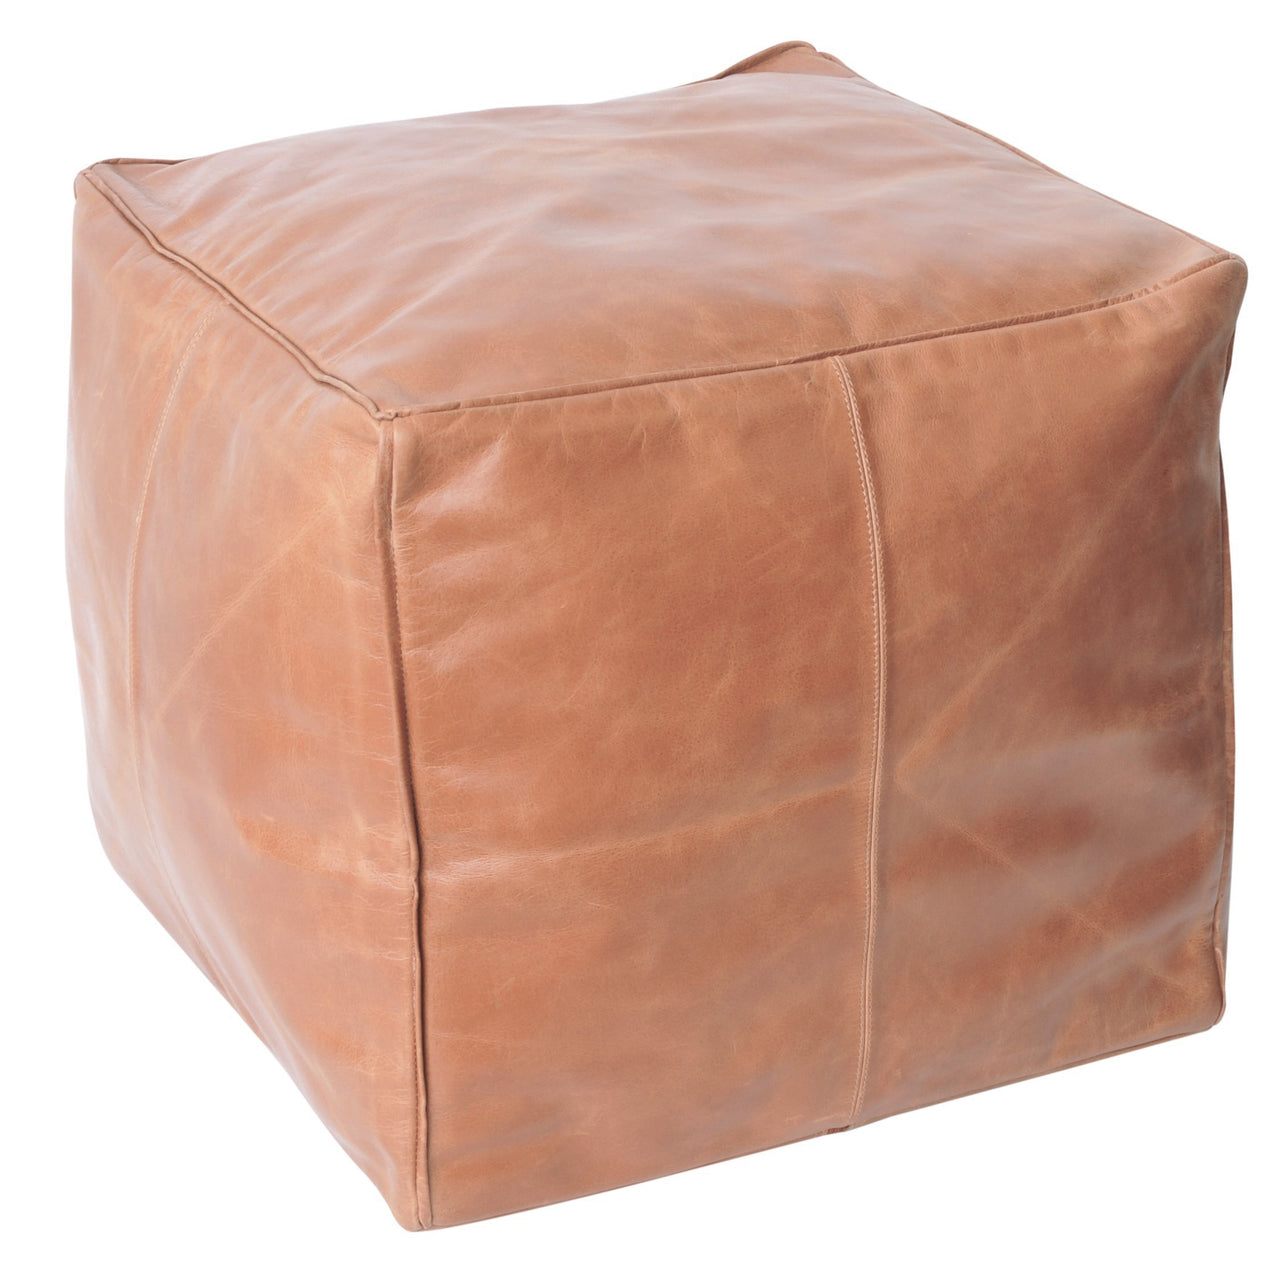 leather tan ottoman pouf pouffe square footstool